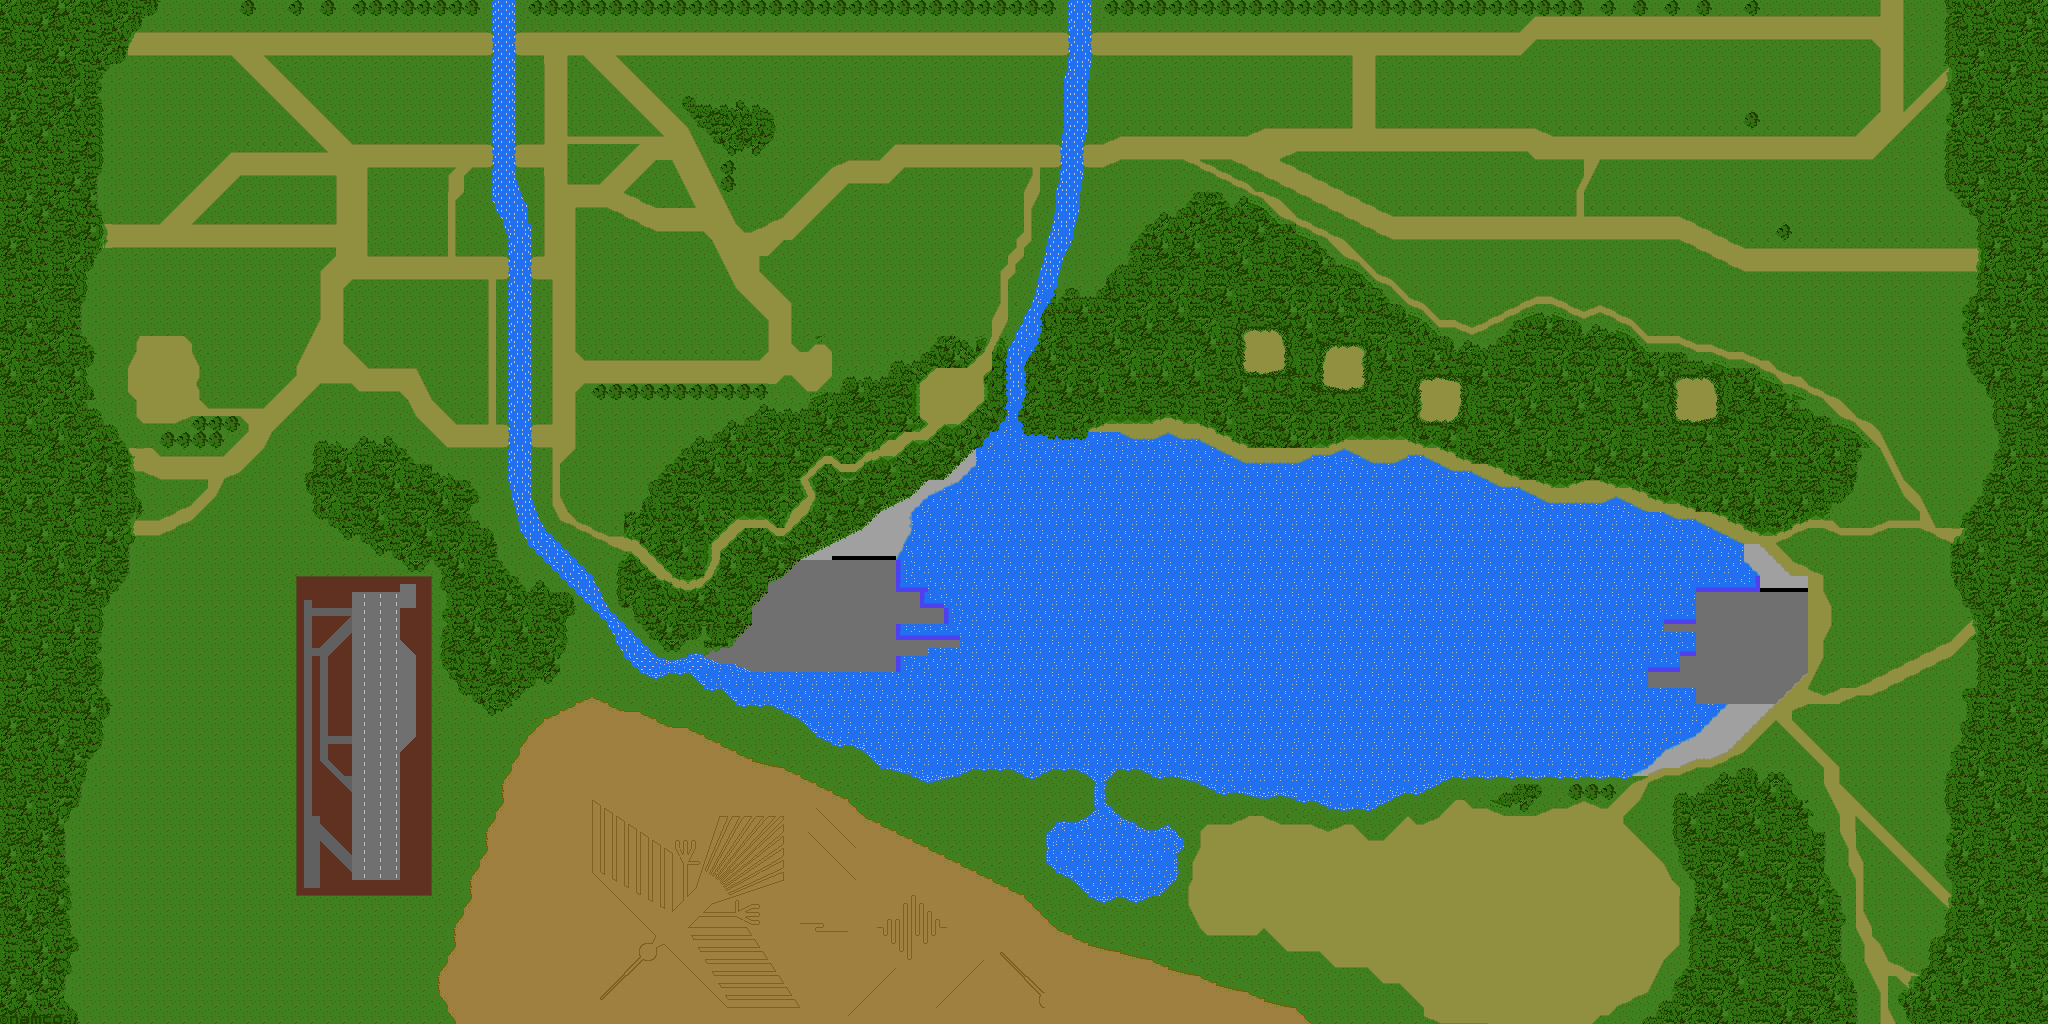 Xevious Area Map By Ringostarr39 On Deviantart